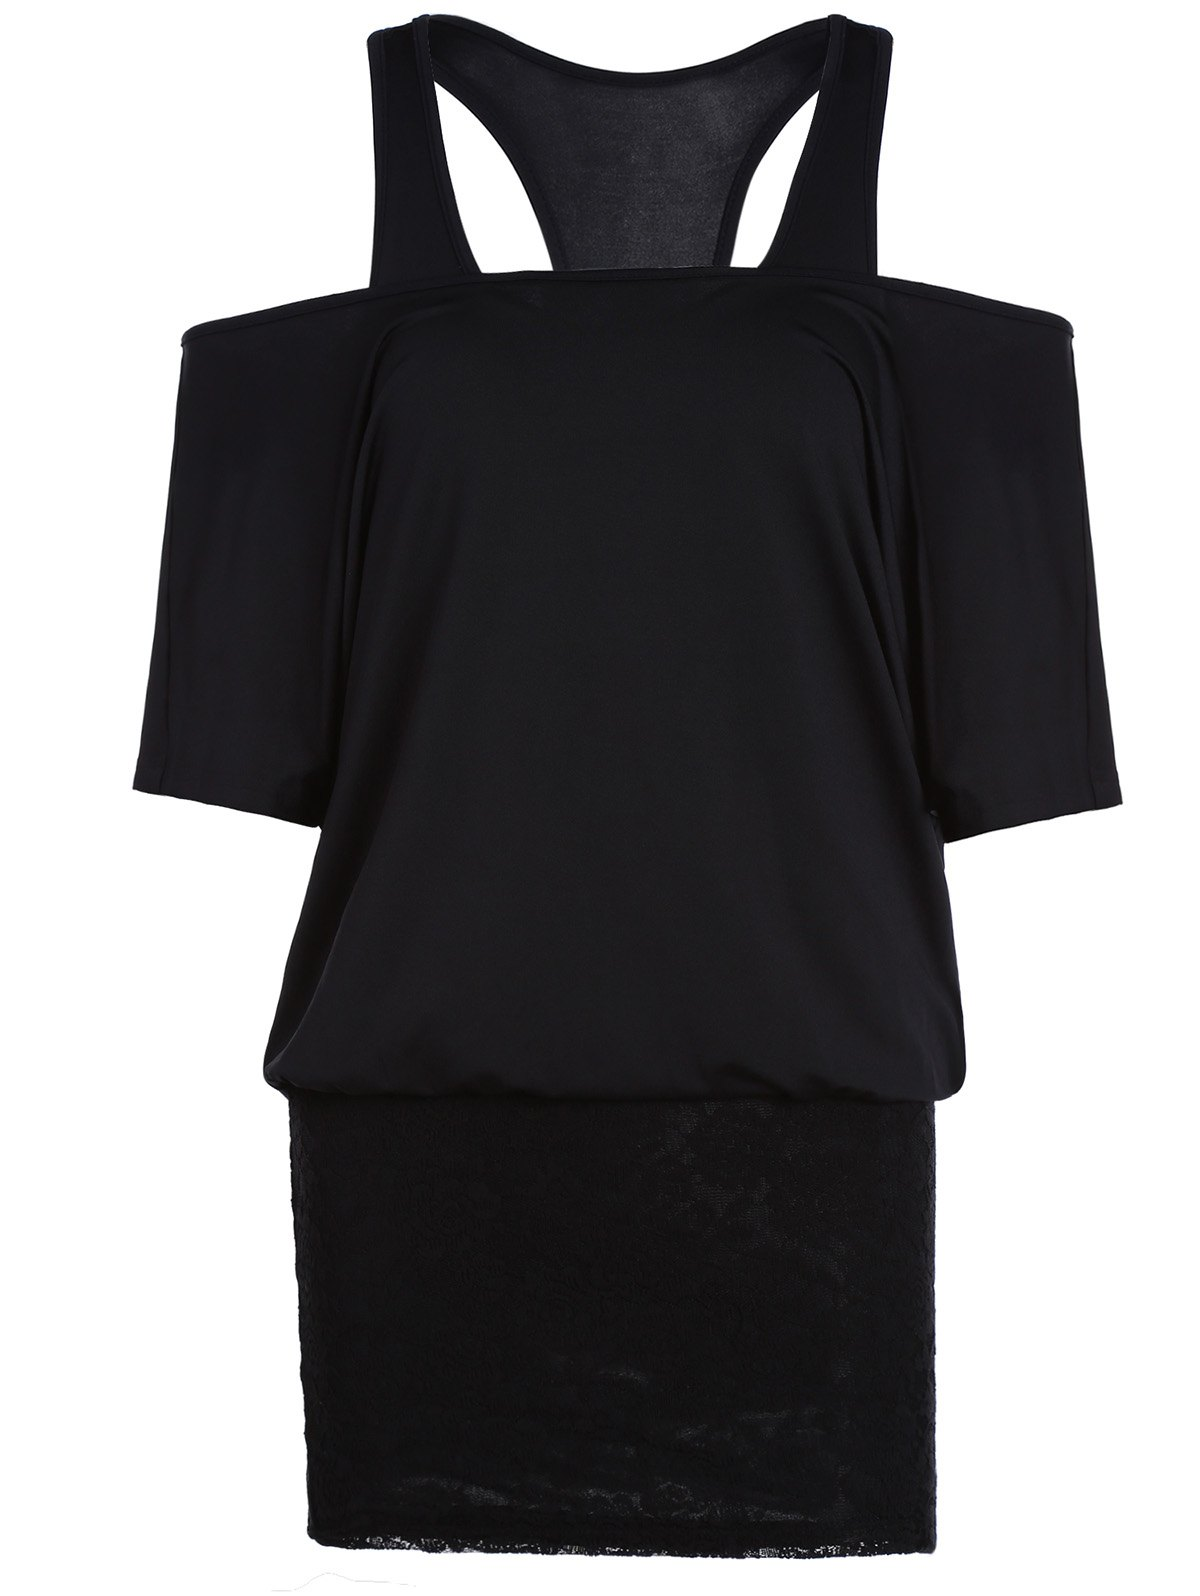 Unique Racerback Tank Top and Off The Shoulder Two Piece Bodycon Dress